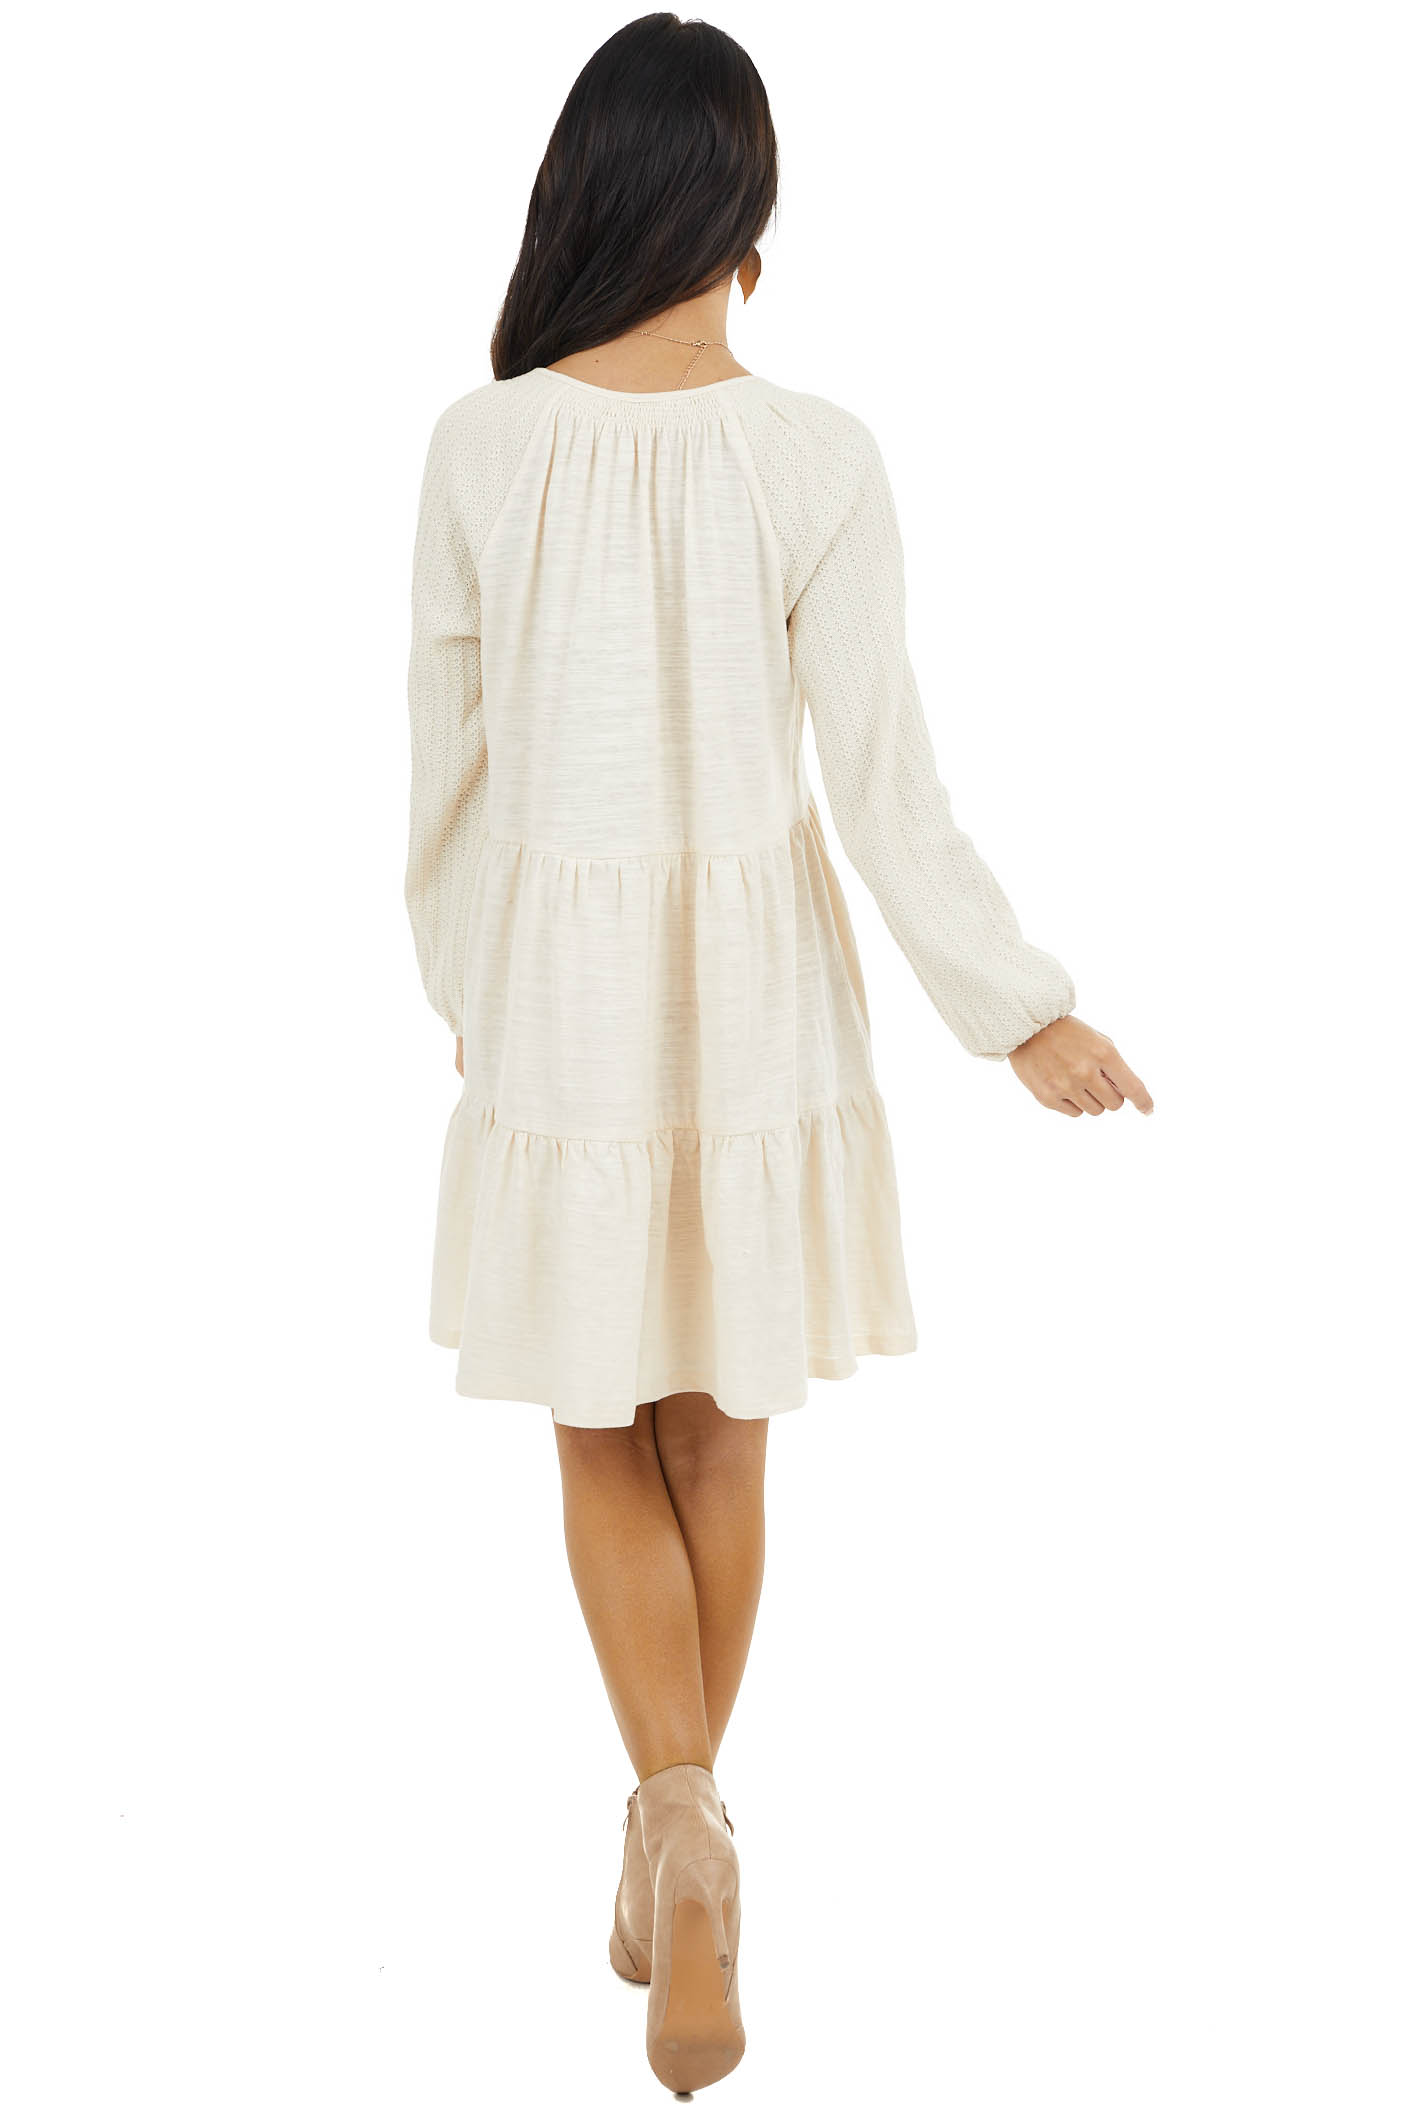 Cream Tiered Mini Dress with Crochet Sleeves and V Neckline